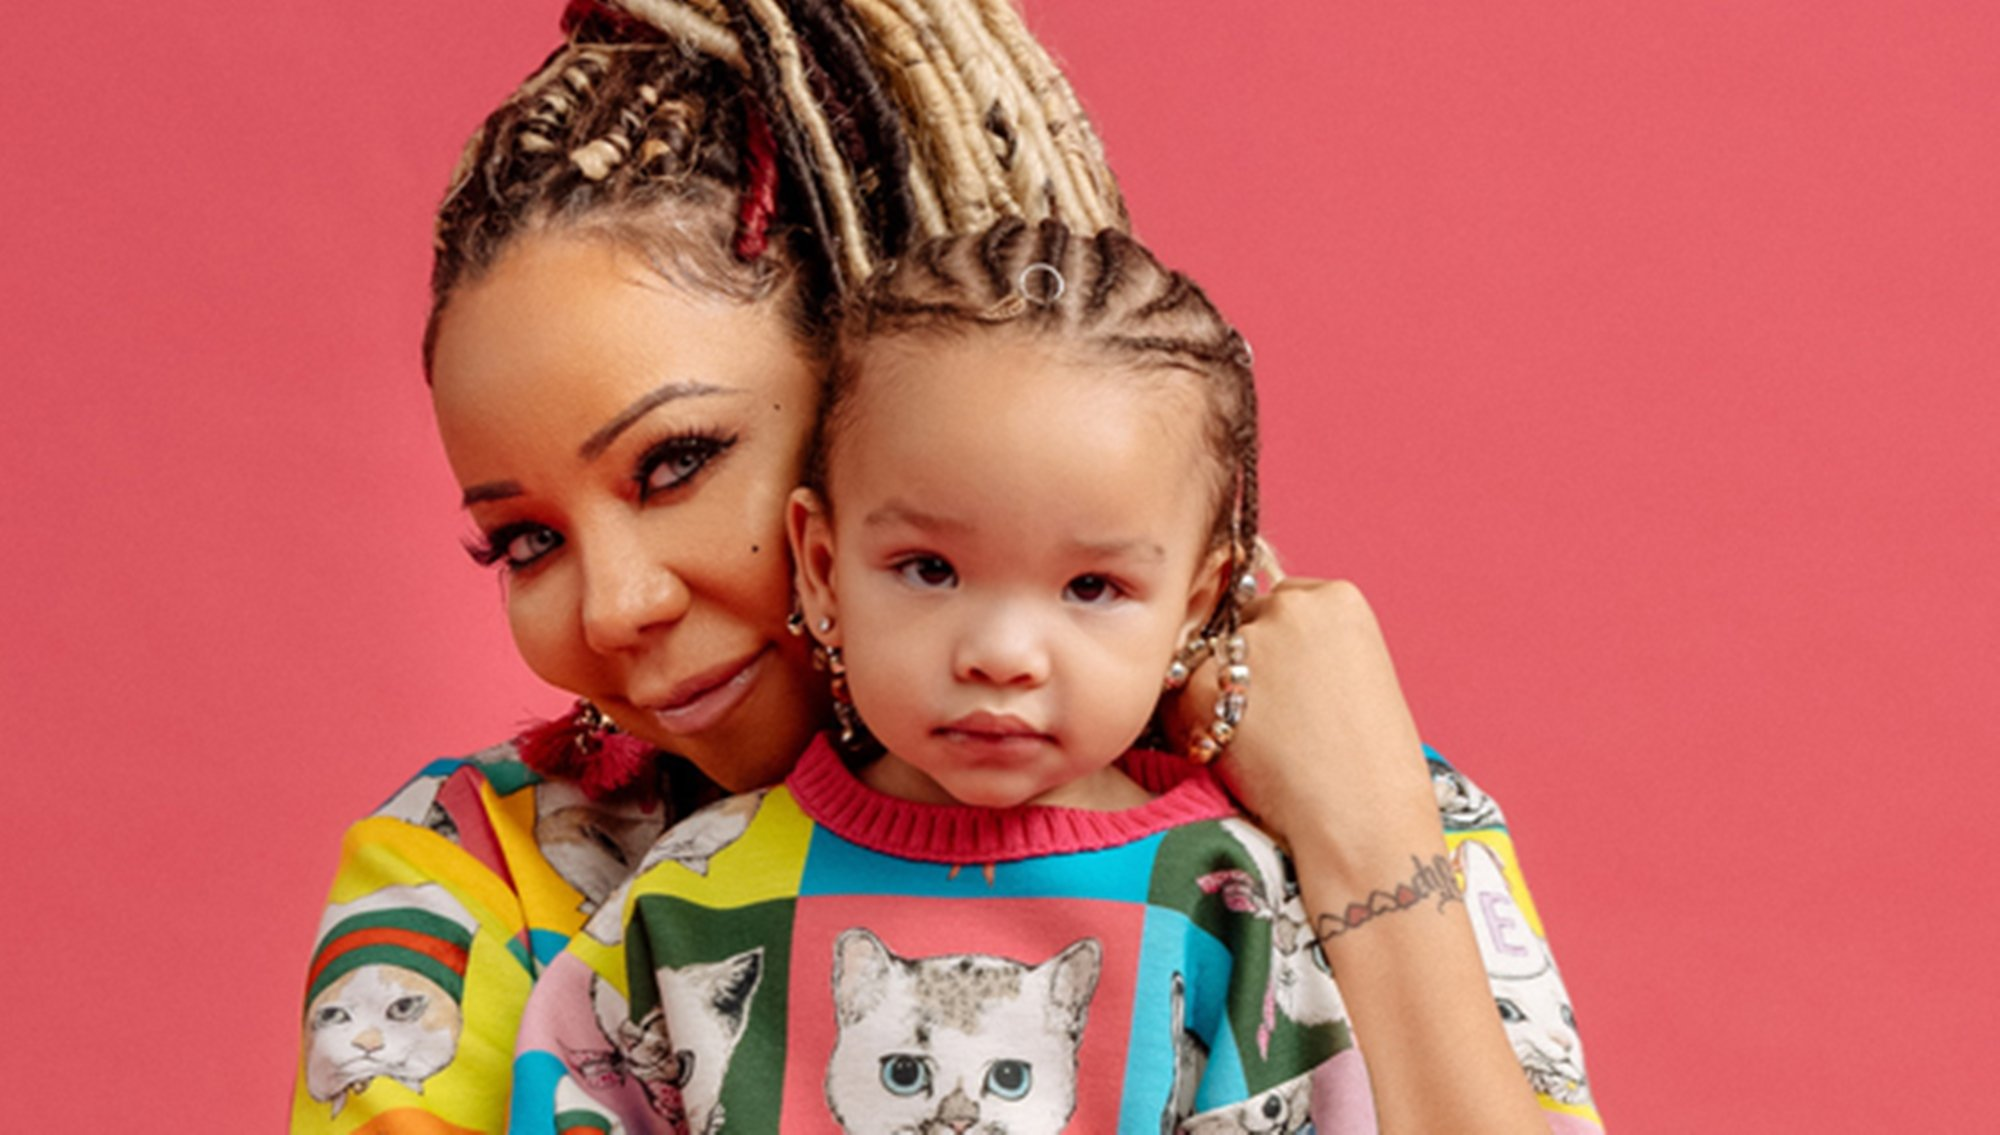 Tiny Harris' Video Featuring Heiress Harris Opening Gifts Has Fans Praising Her Sweetness